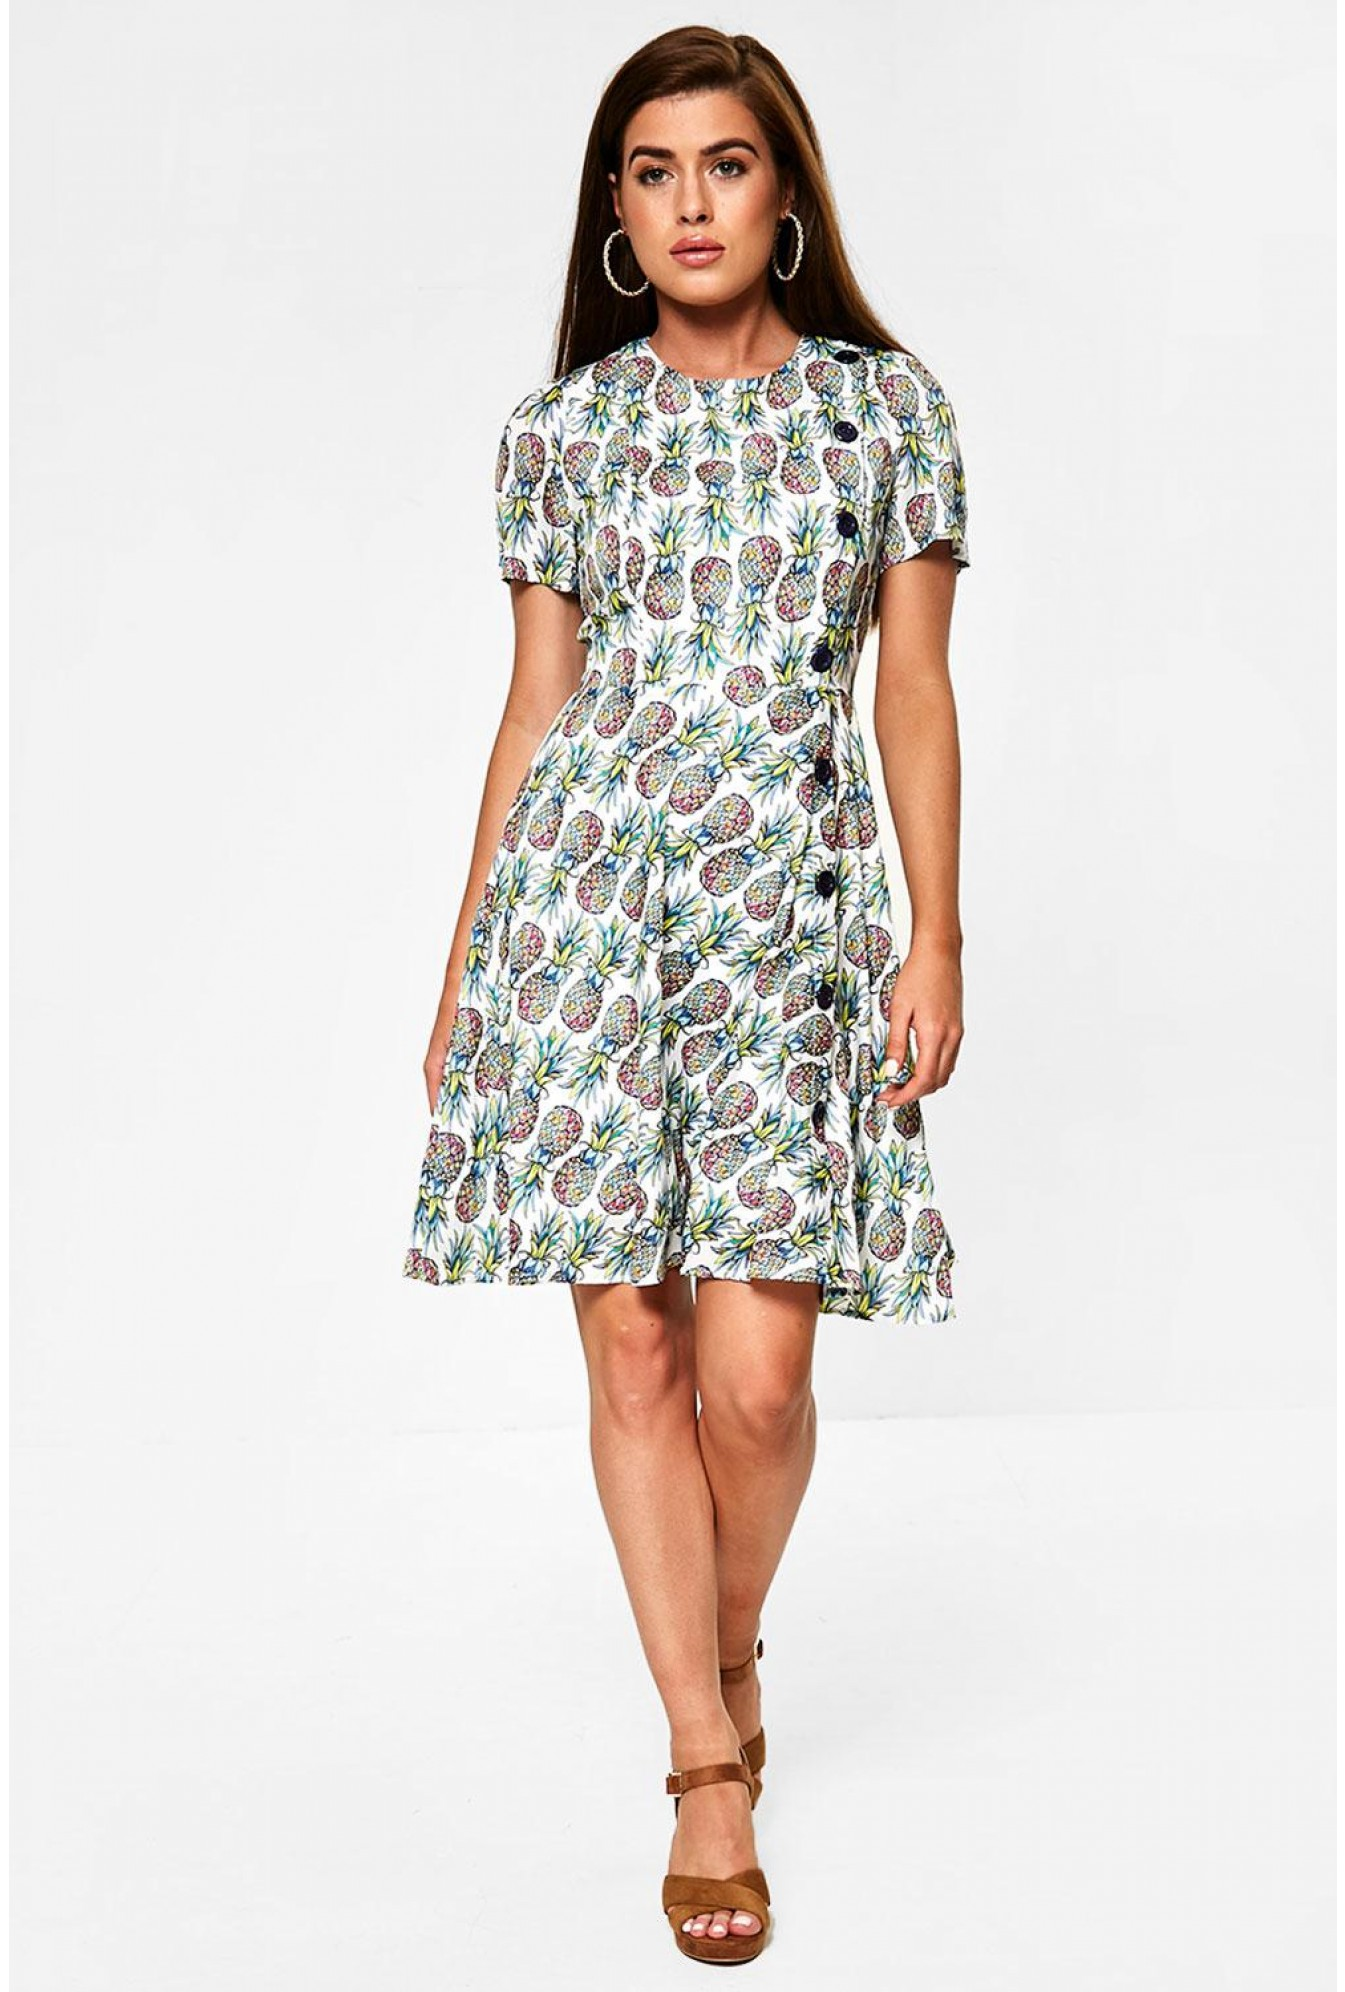 ff85b9489da826 Darling Pineapple Print Skater Dress in White | iCLOTHING